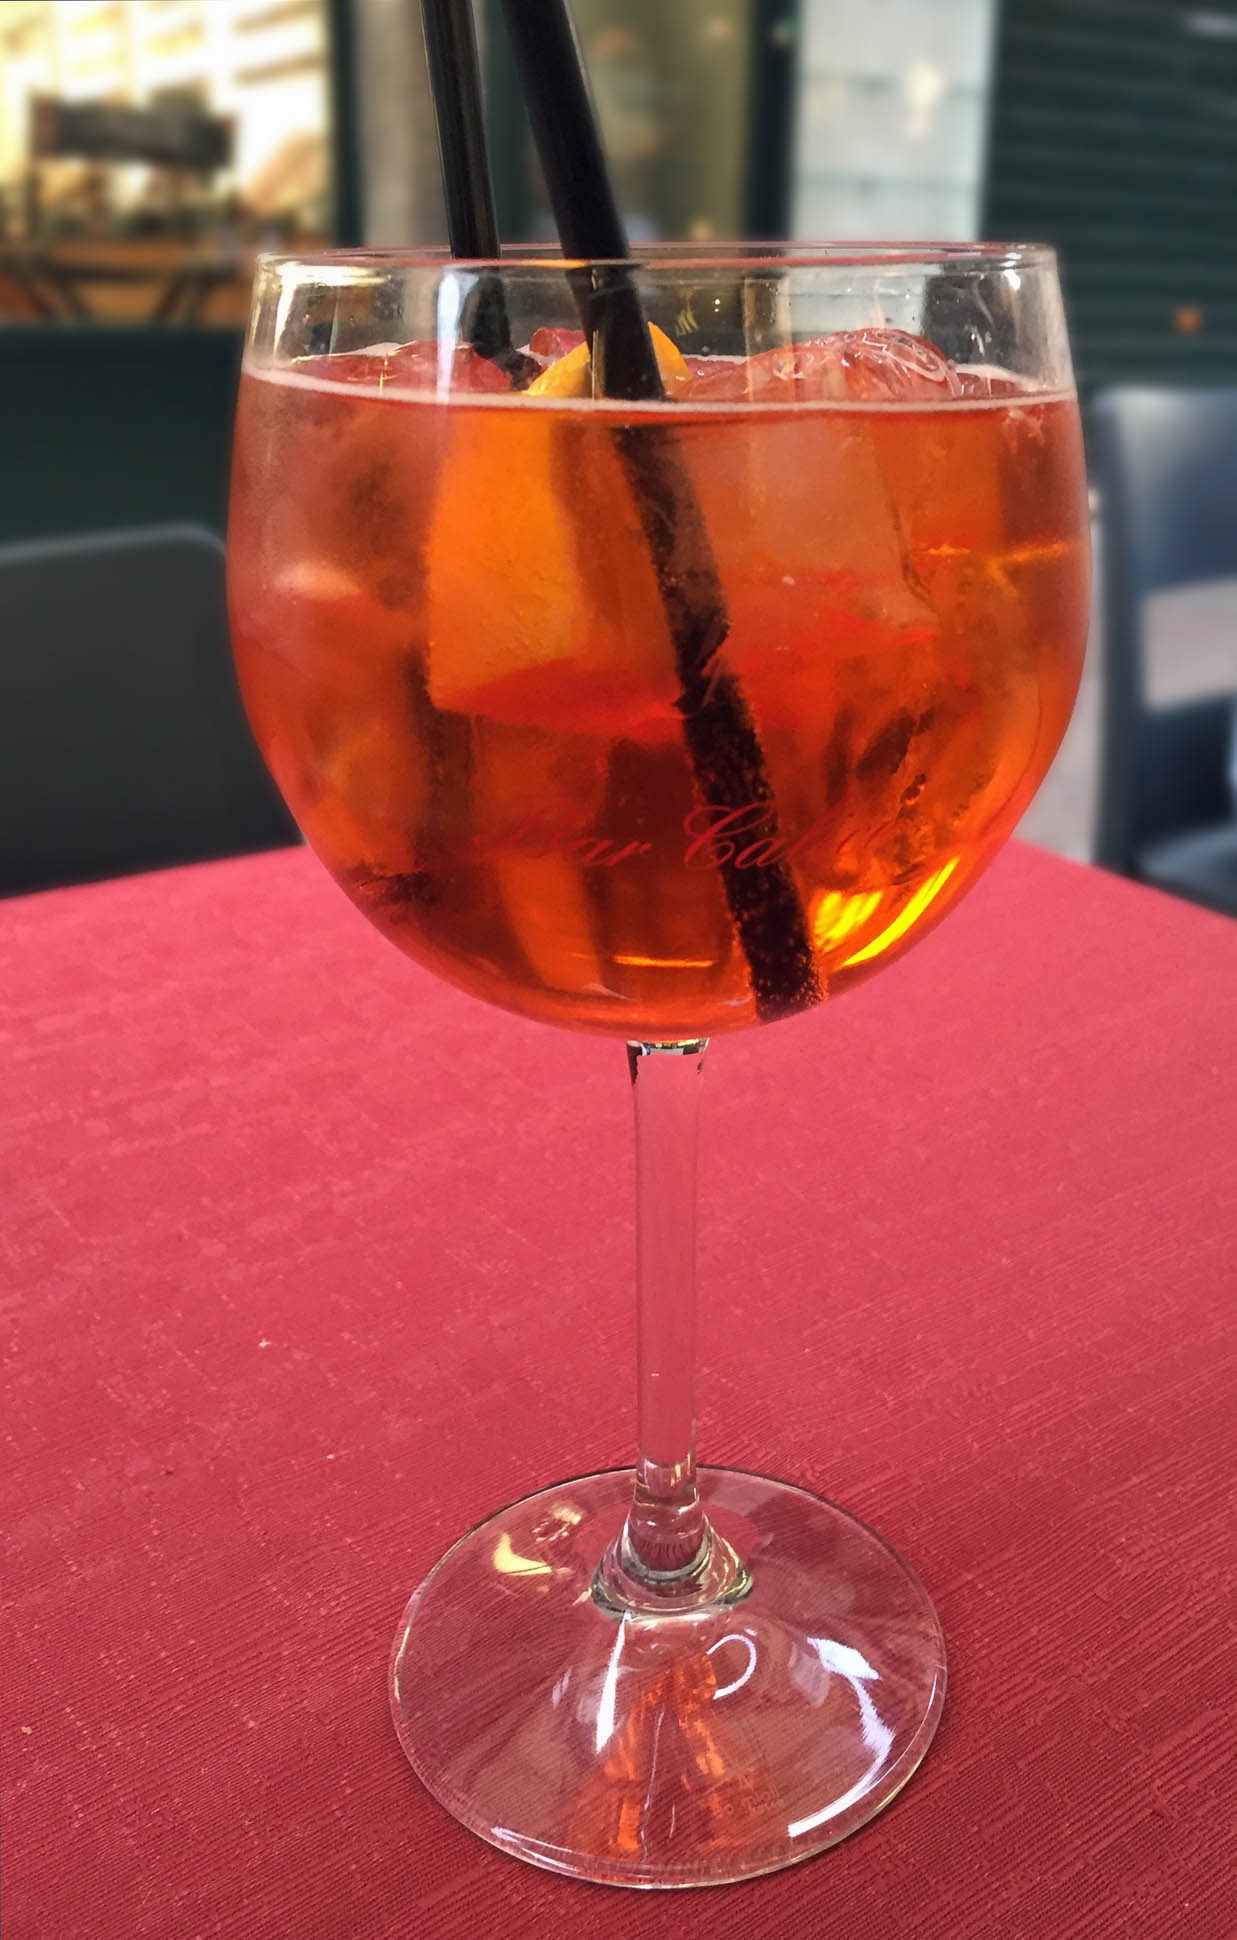 Glass of orange coloured drink on red table cloth